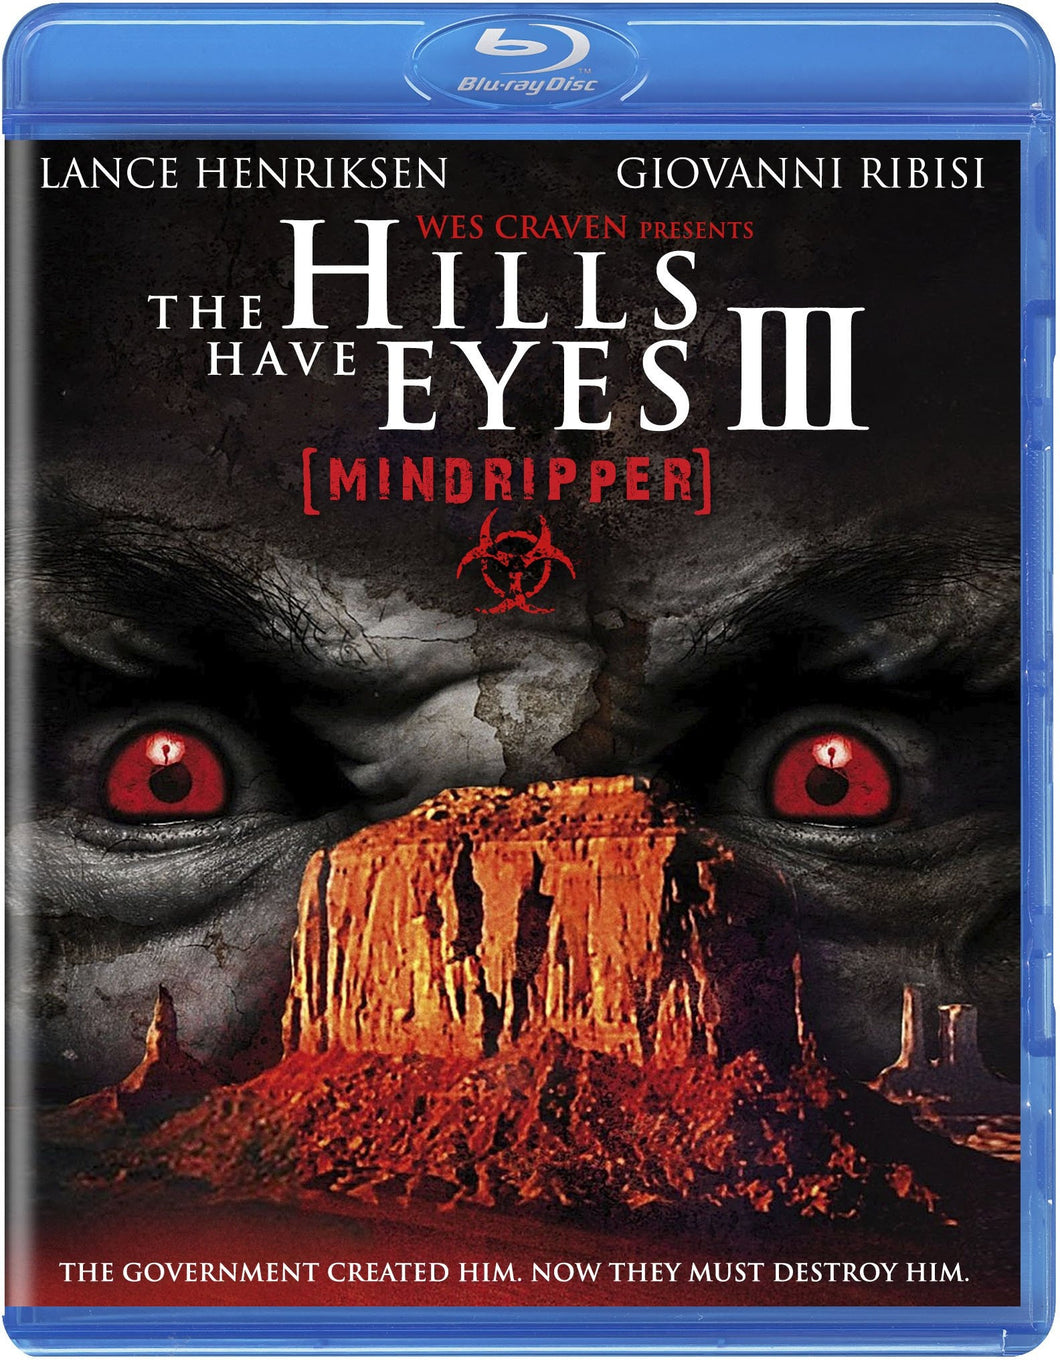 The Hills Have Eyes (Blu-ray): Ronin Flix